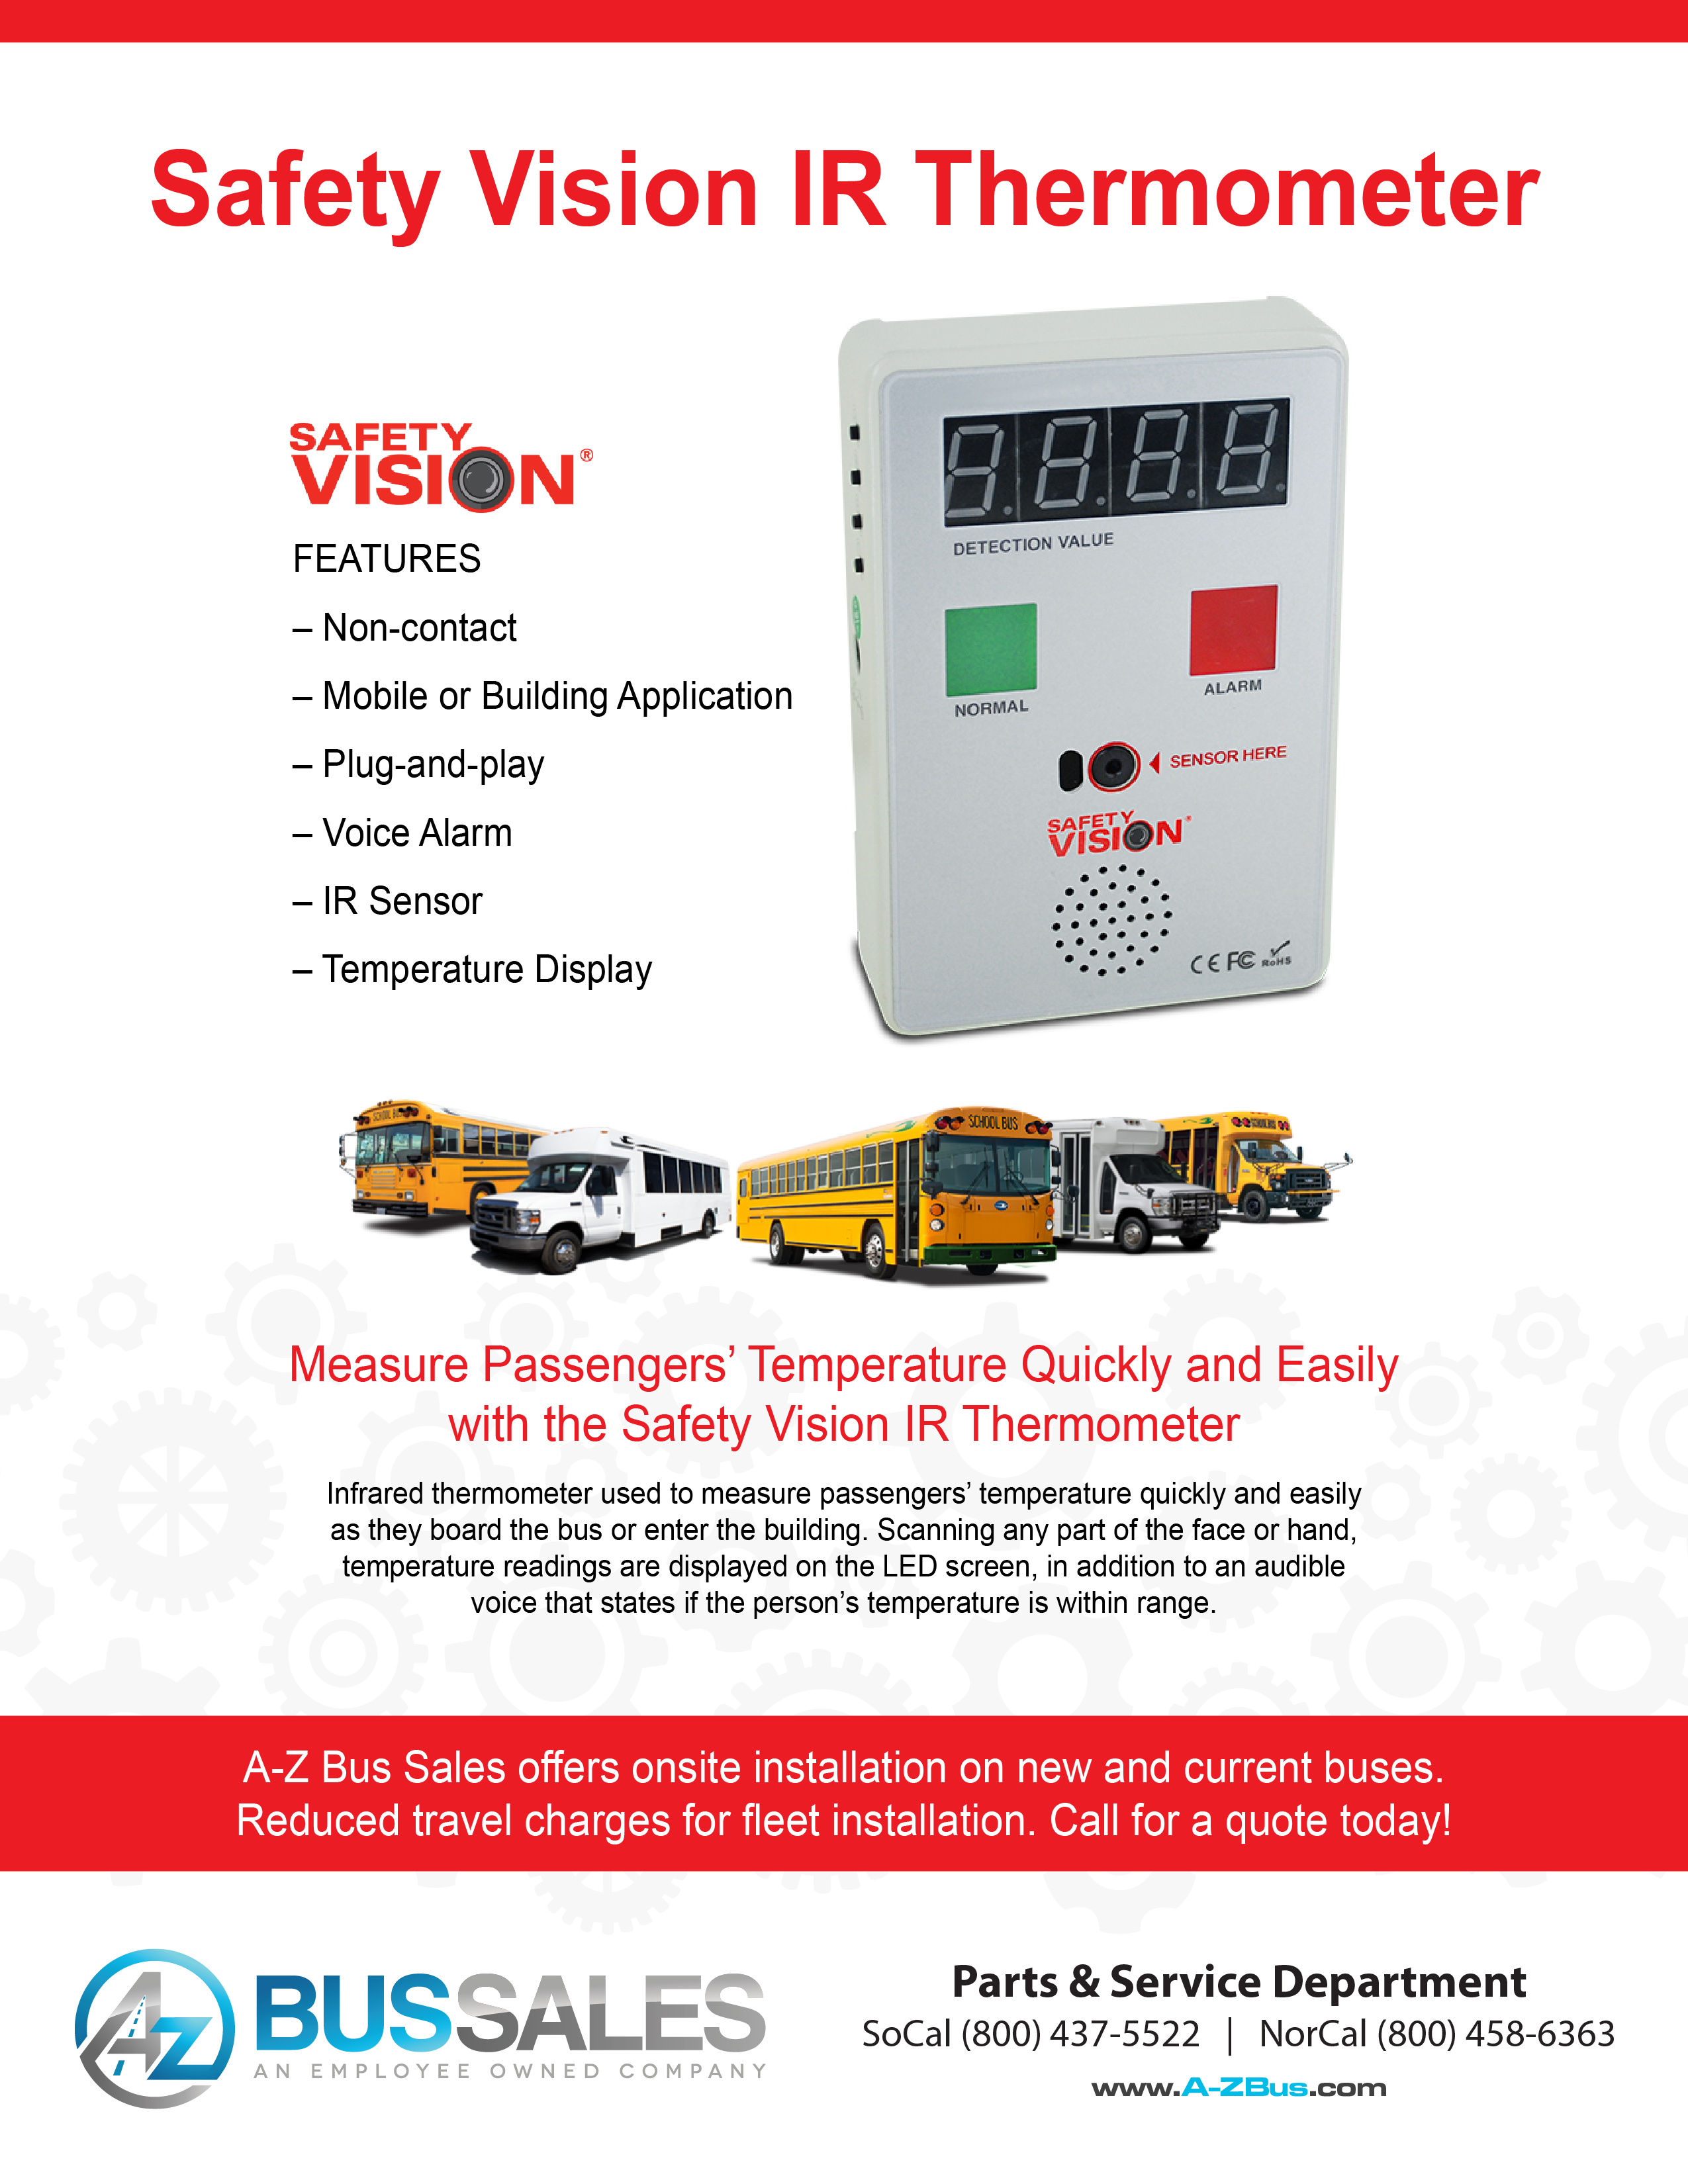 Safety Vision IR Thermometer_Flyer